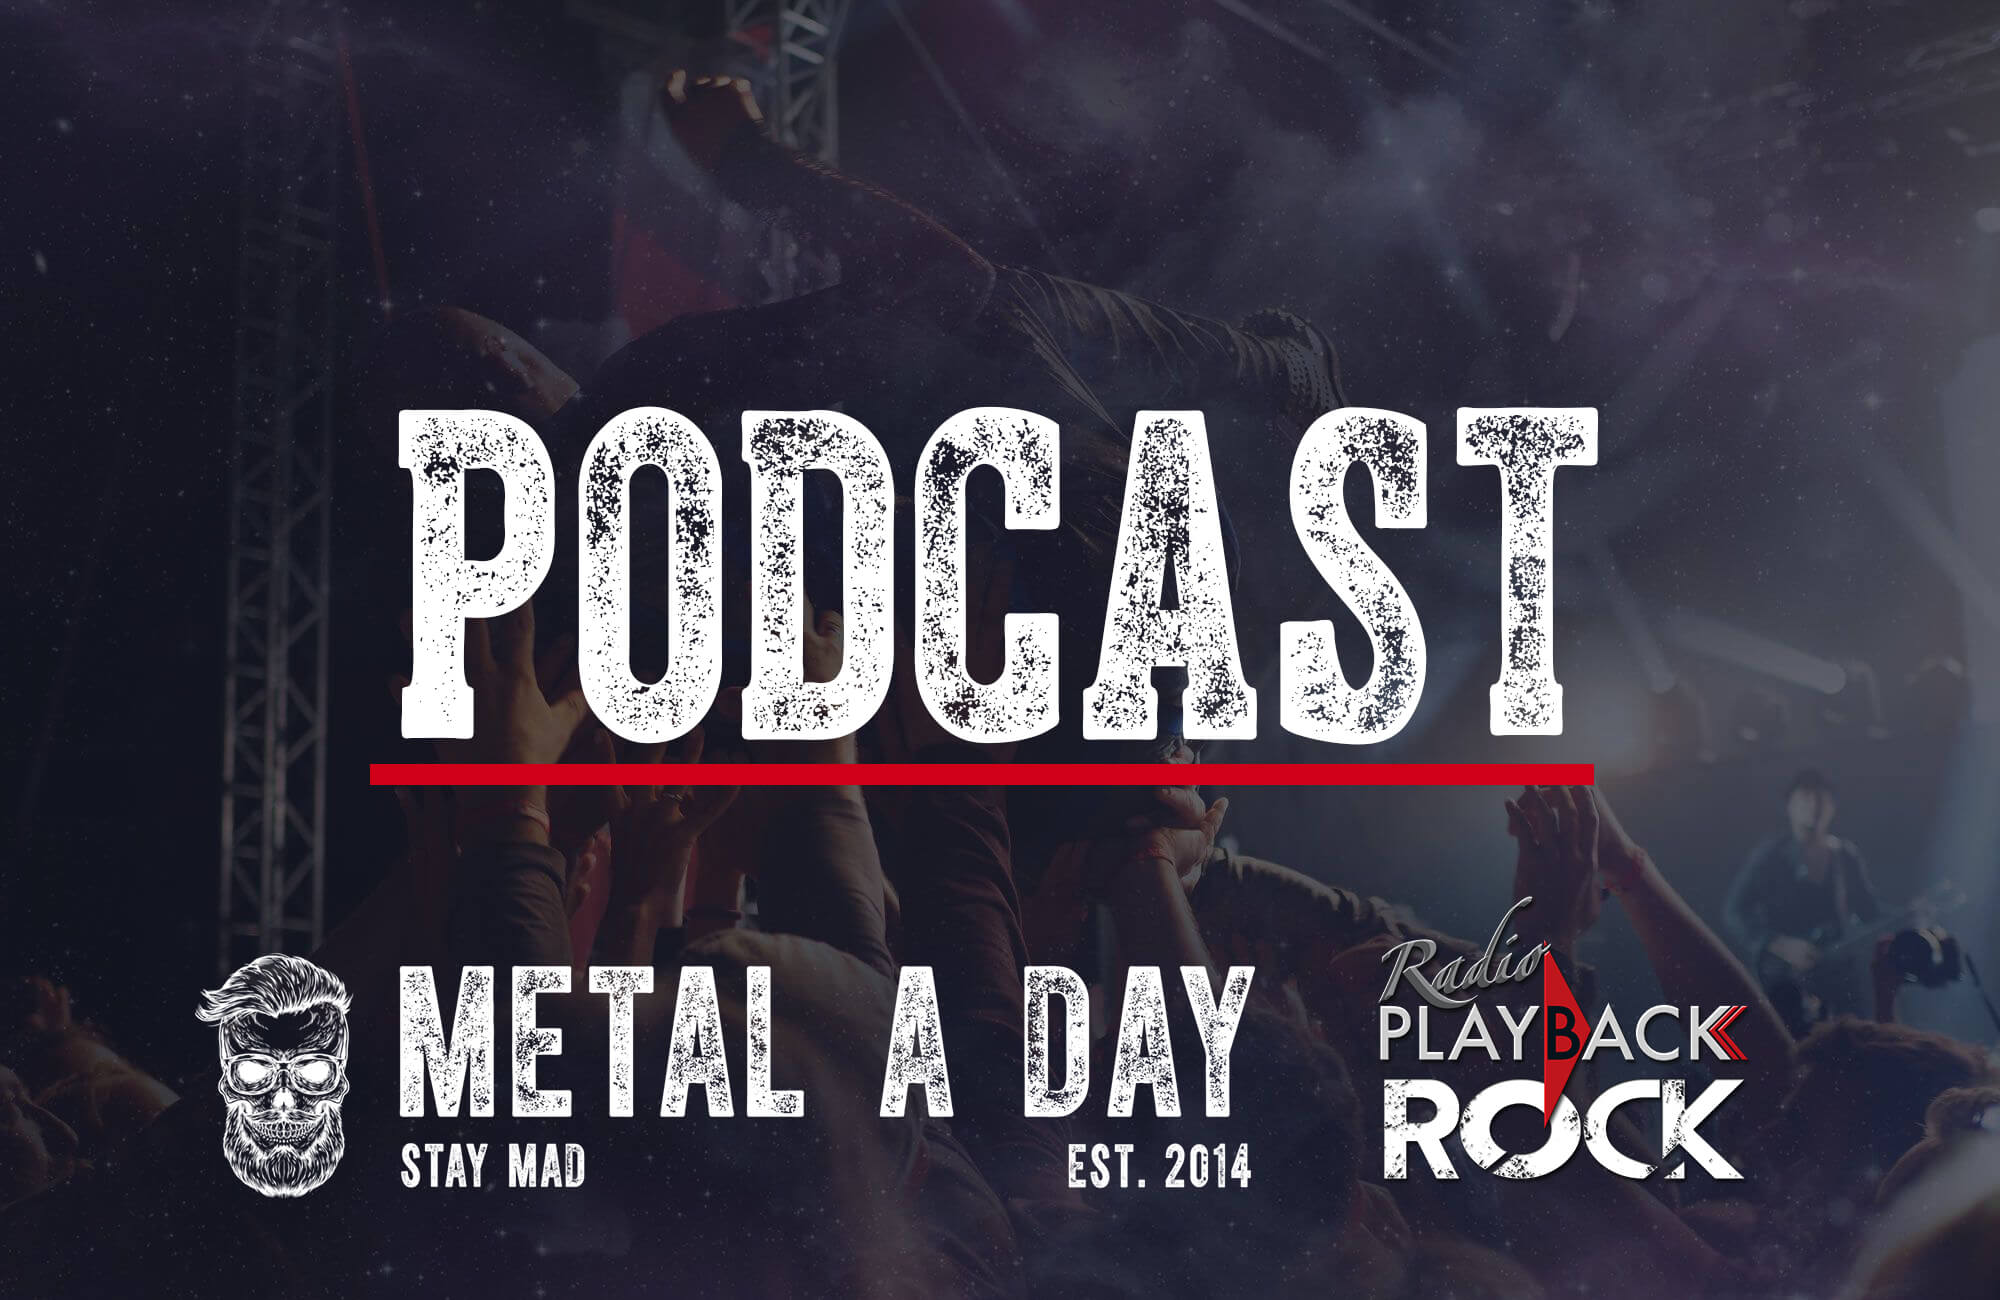 Badass Nr.1 Rock Podcasts med Radio Playback Rock & Metal A Day